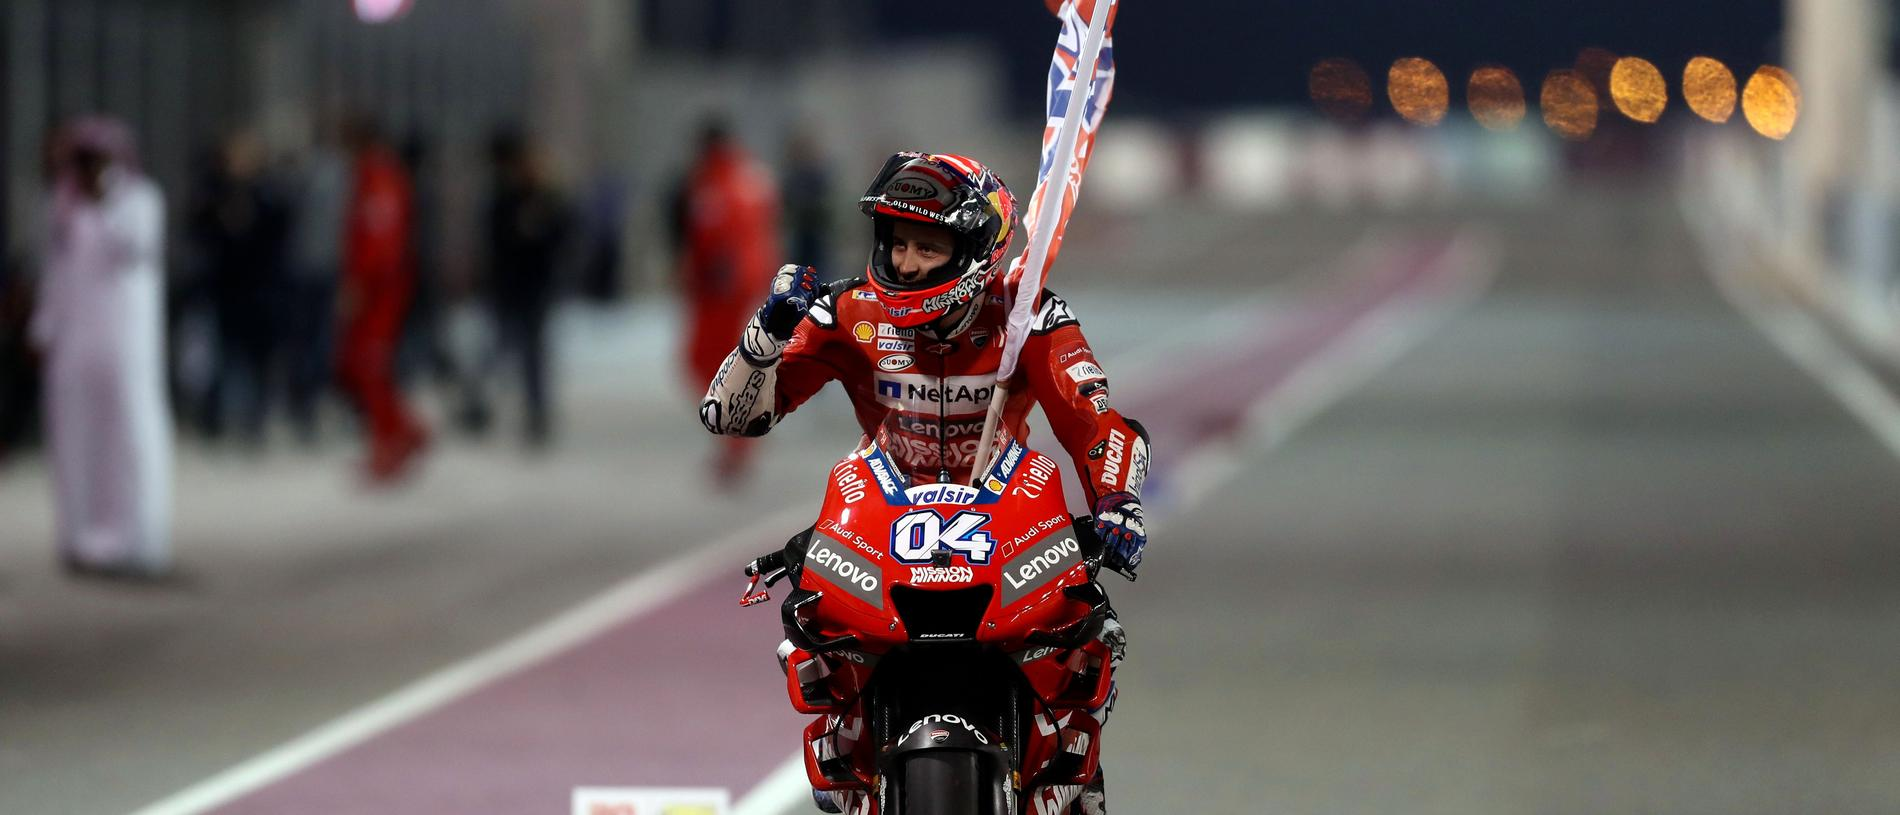 Mission Winnow Ducati's Italian rider Andrea Dovizioso celebrates winning the Qatar MotoGP grand prix at the Losail track in Qatar's capital Doha on March 10, 2019. (Photo by KARIM JAAFAR / AFP)